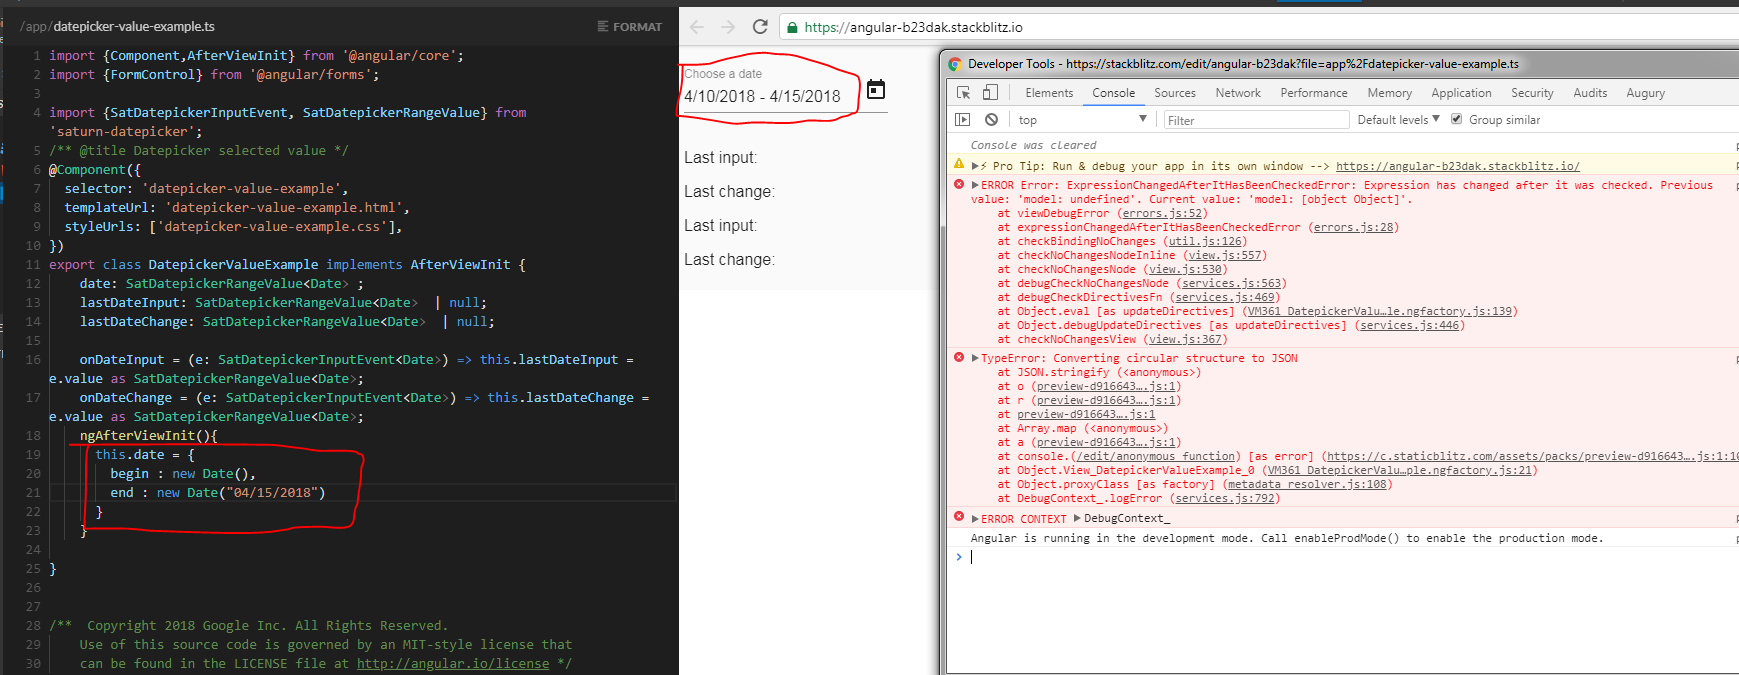 Converting circular structure to JSON · Issue #7